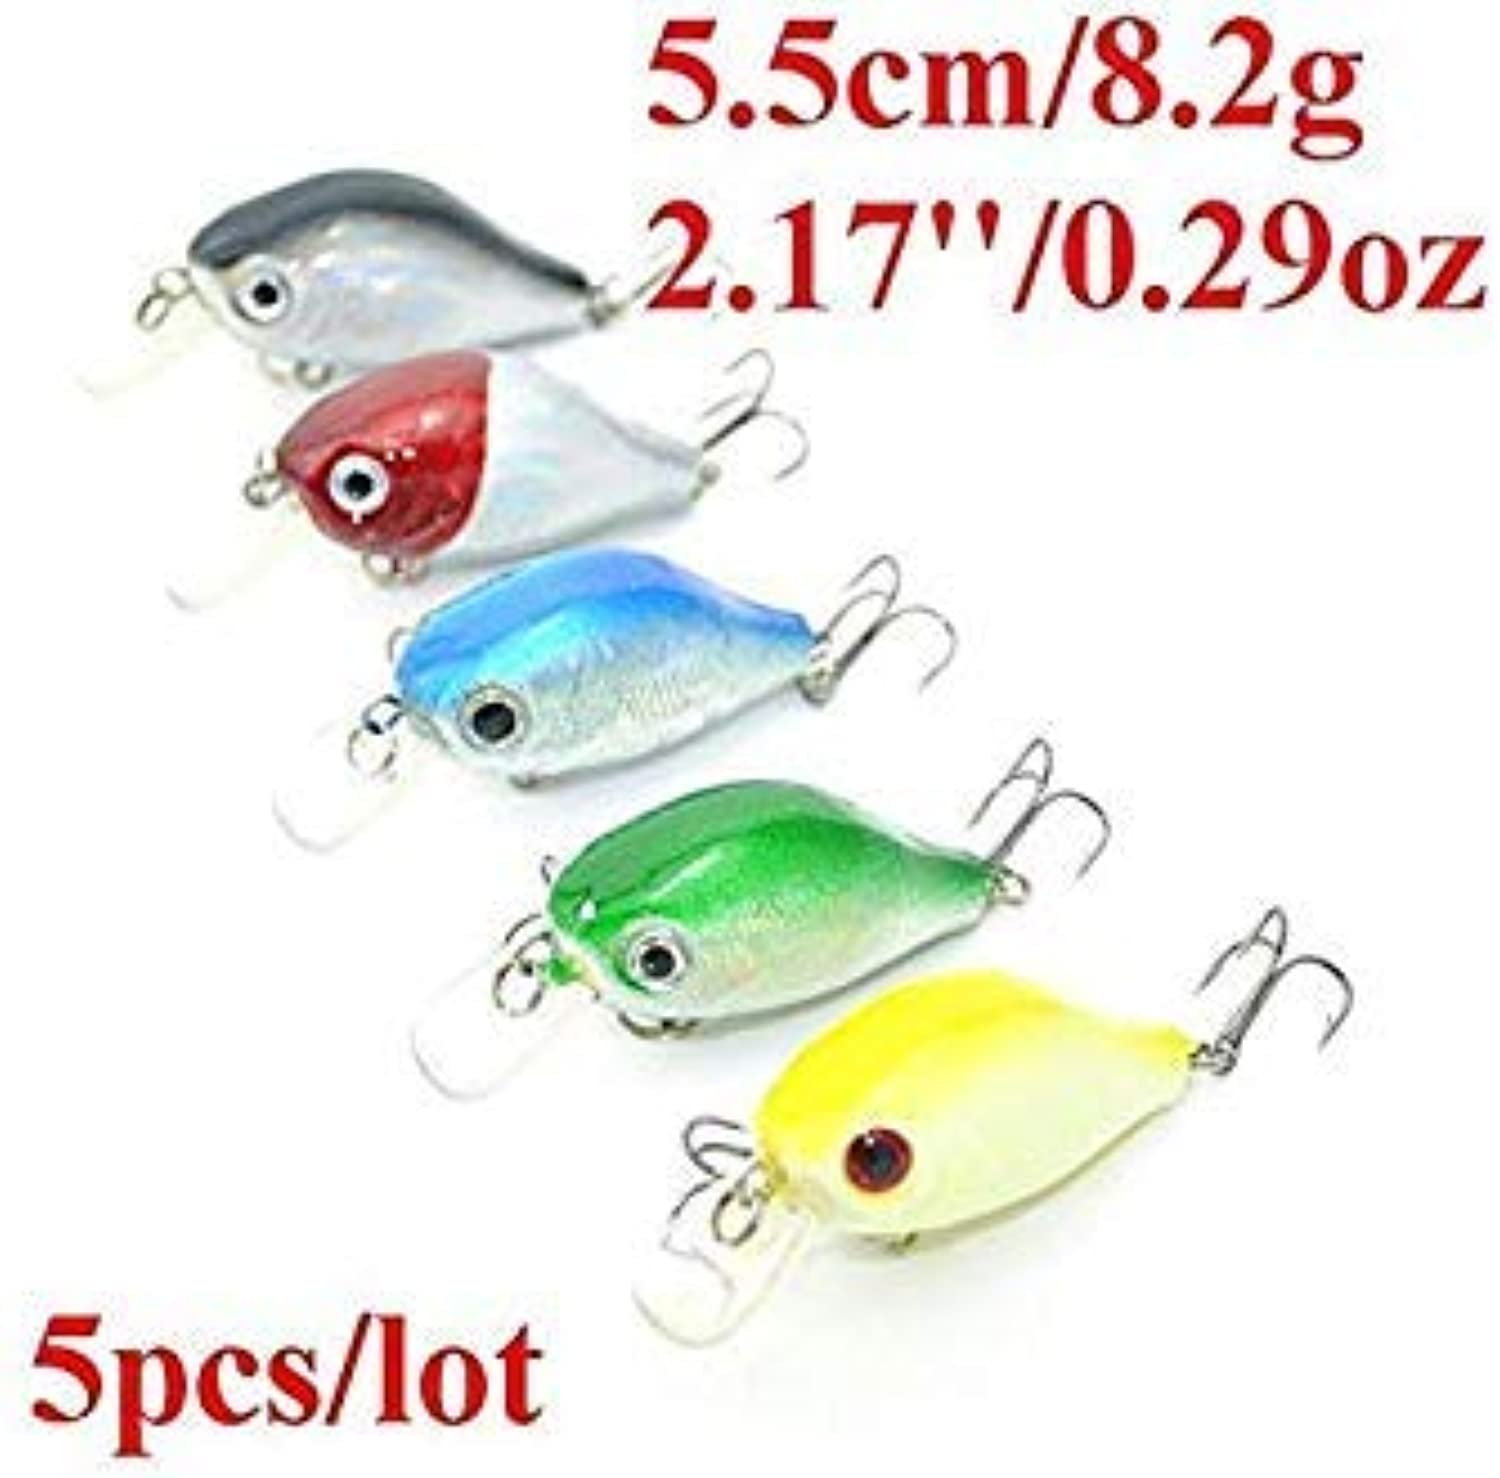 Crank Bait Fishing Hard Ice Fishing Bait Fishing Hard Lure Crank Lure